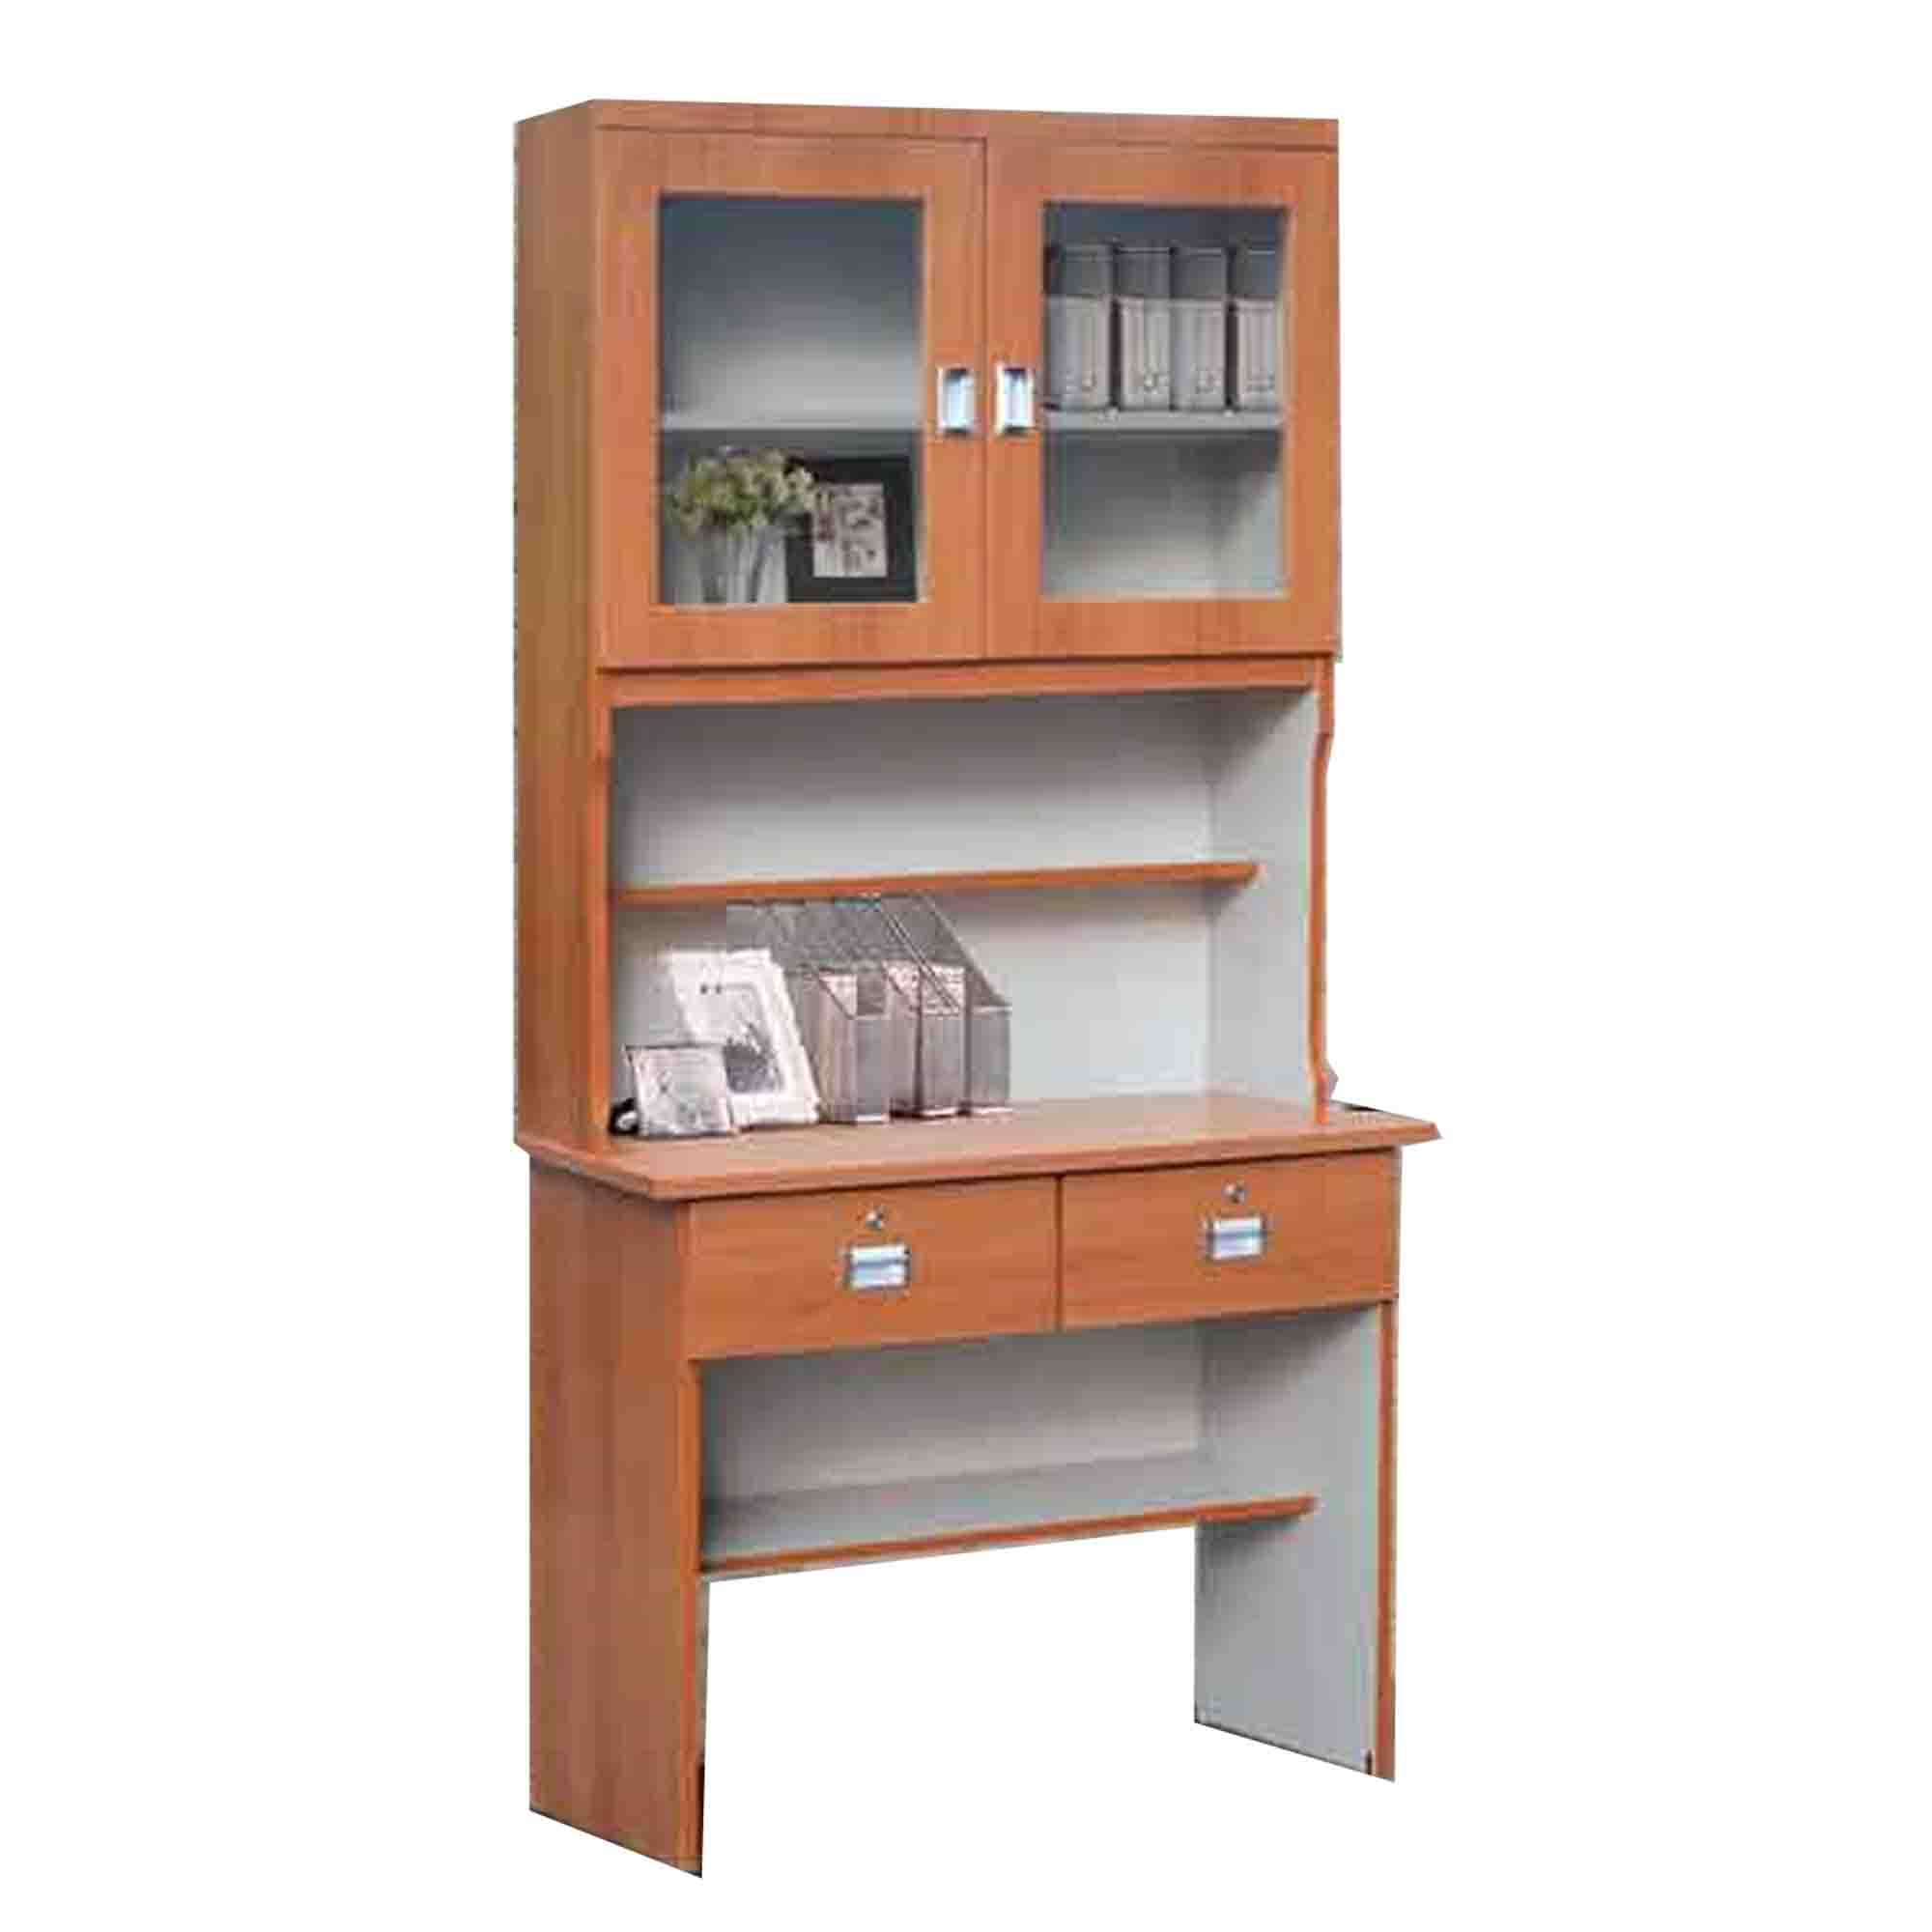 Study Table Bookshelf Office Table Computer Desk With And Without Top Shelf Free Delivery And Installation Lazada Singapore